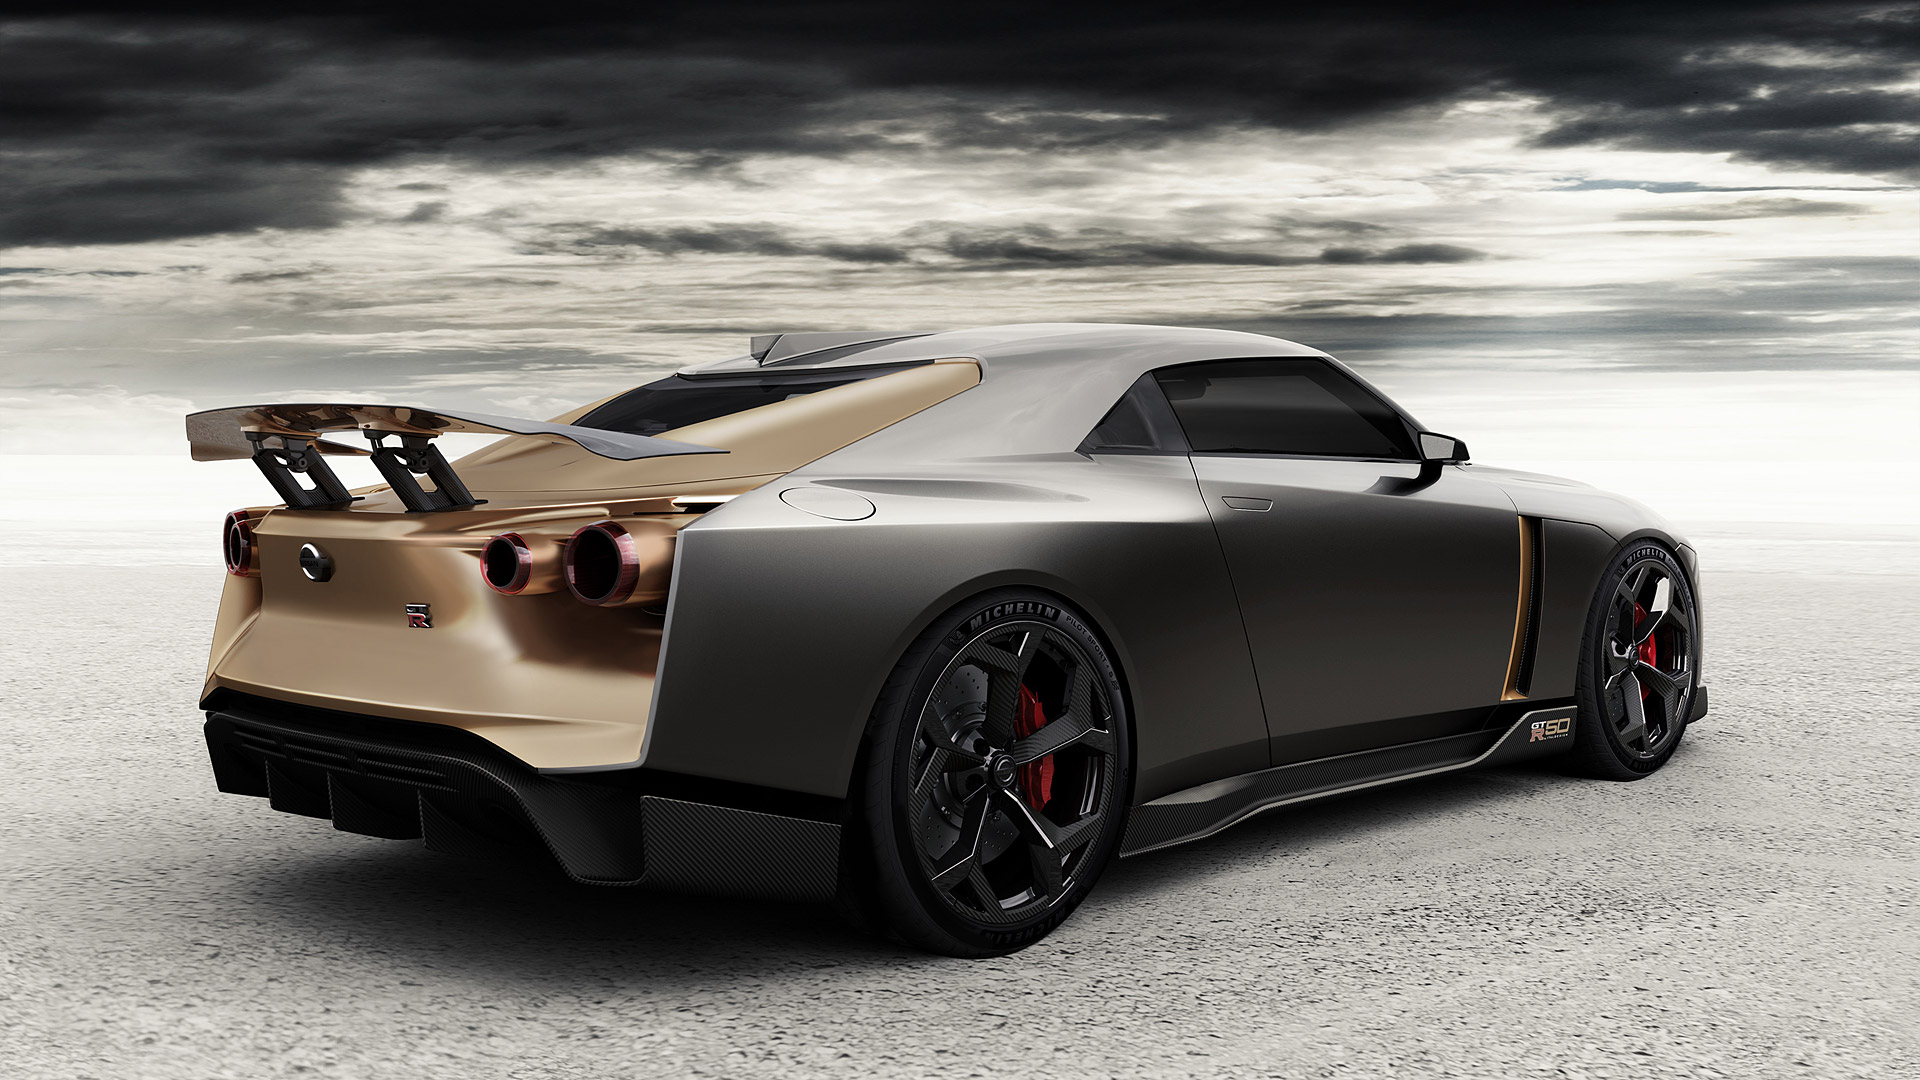 1920x1080 - Nissan Concept Wallpapers 34